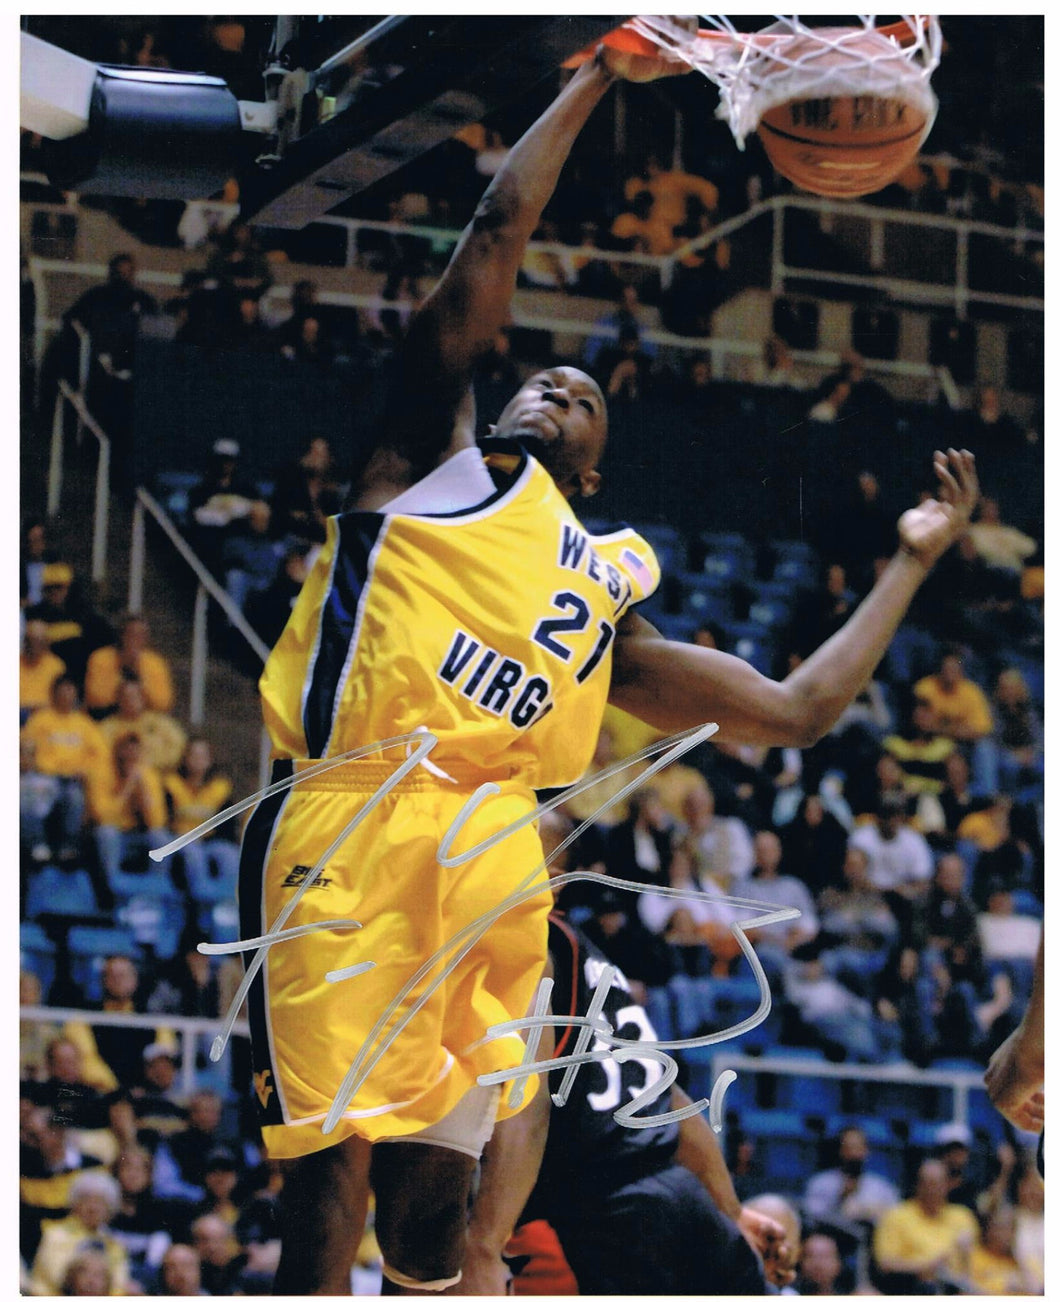 wvu basketball, frank young autograph